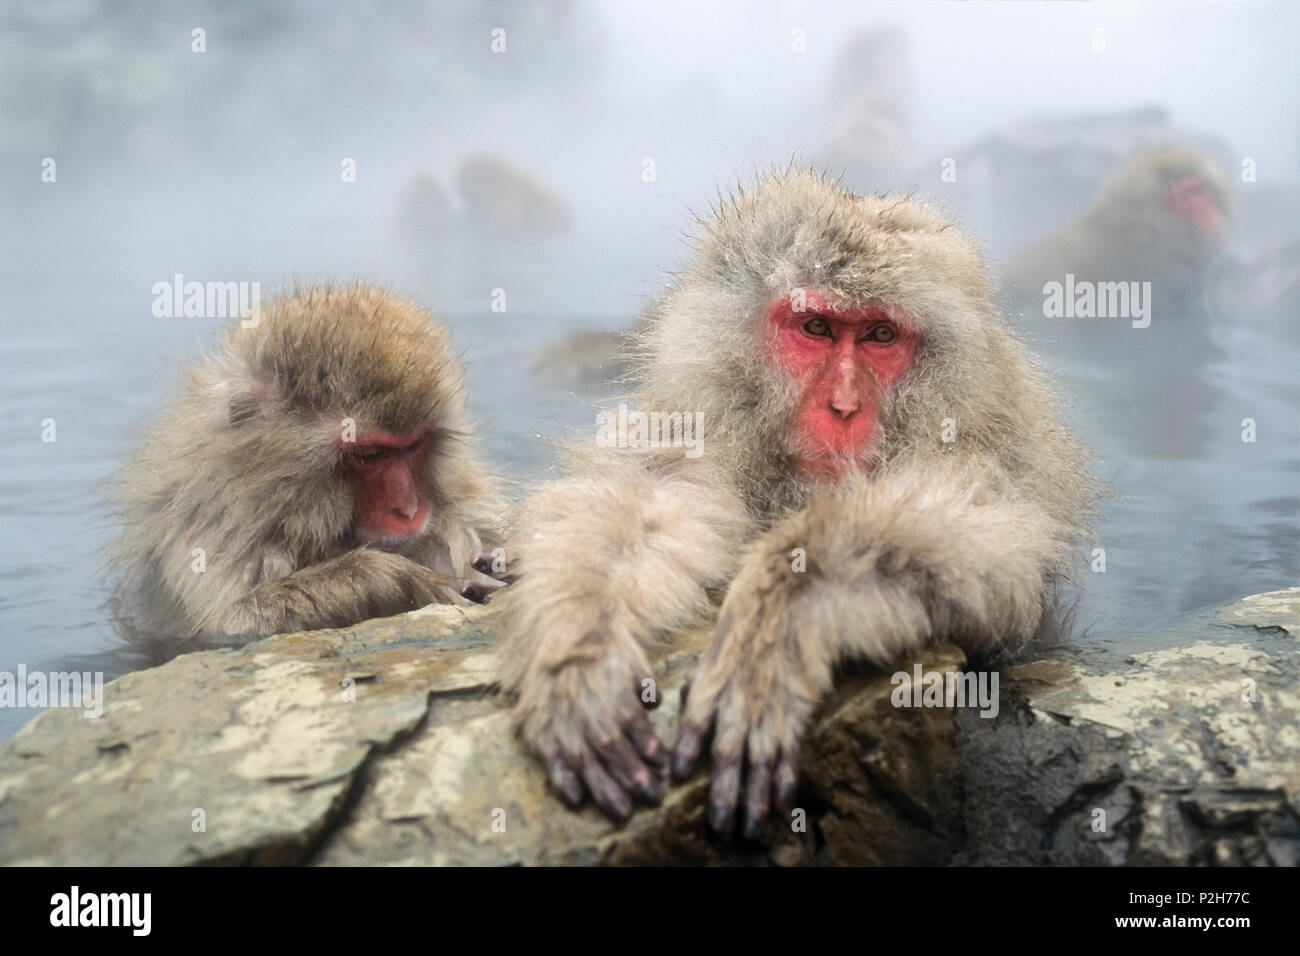 Snowmonkeys, macaques japonais dans le toilettage, Macaca fuscata, Alpes japonaises, le Japon Photo Stock